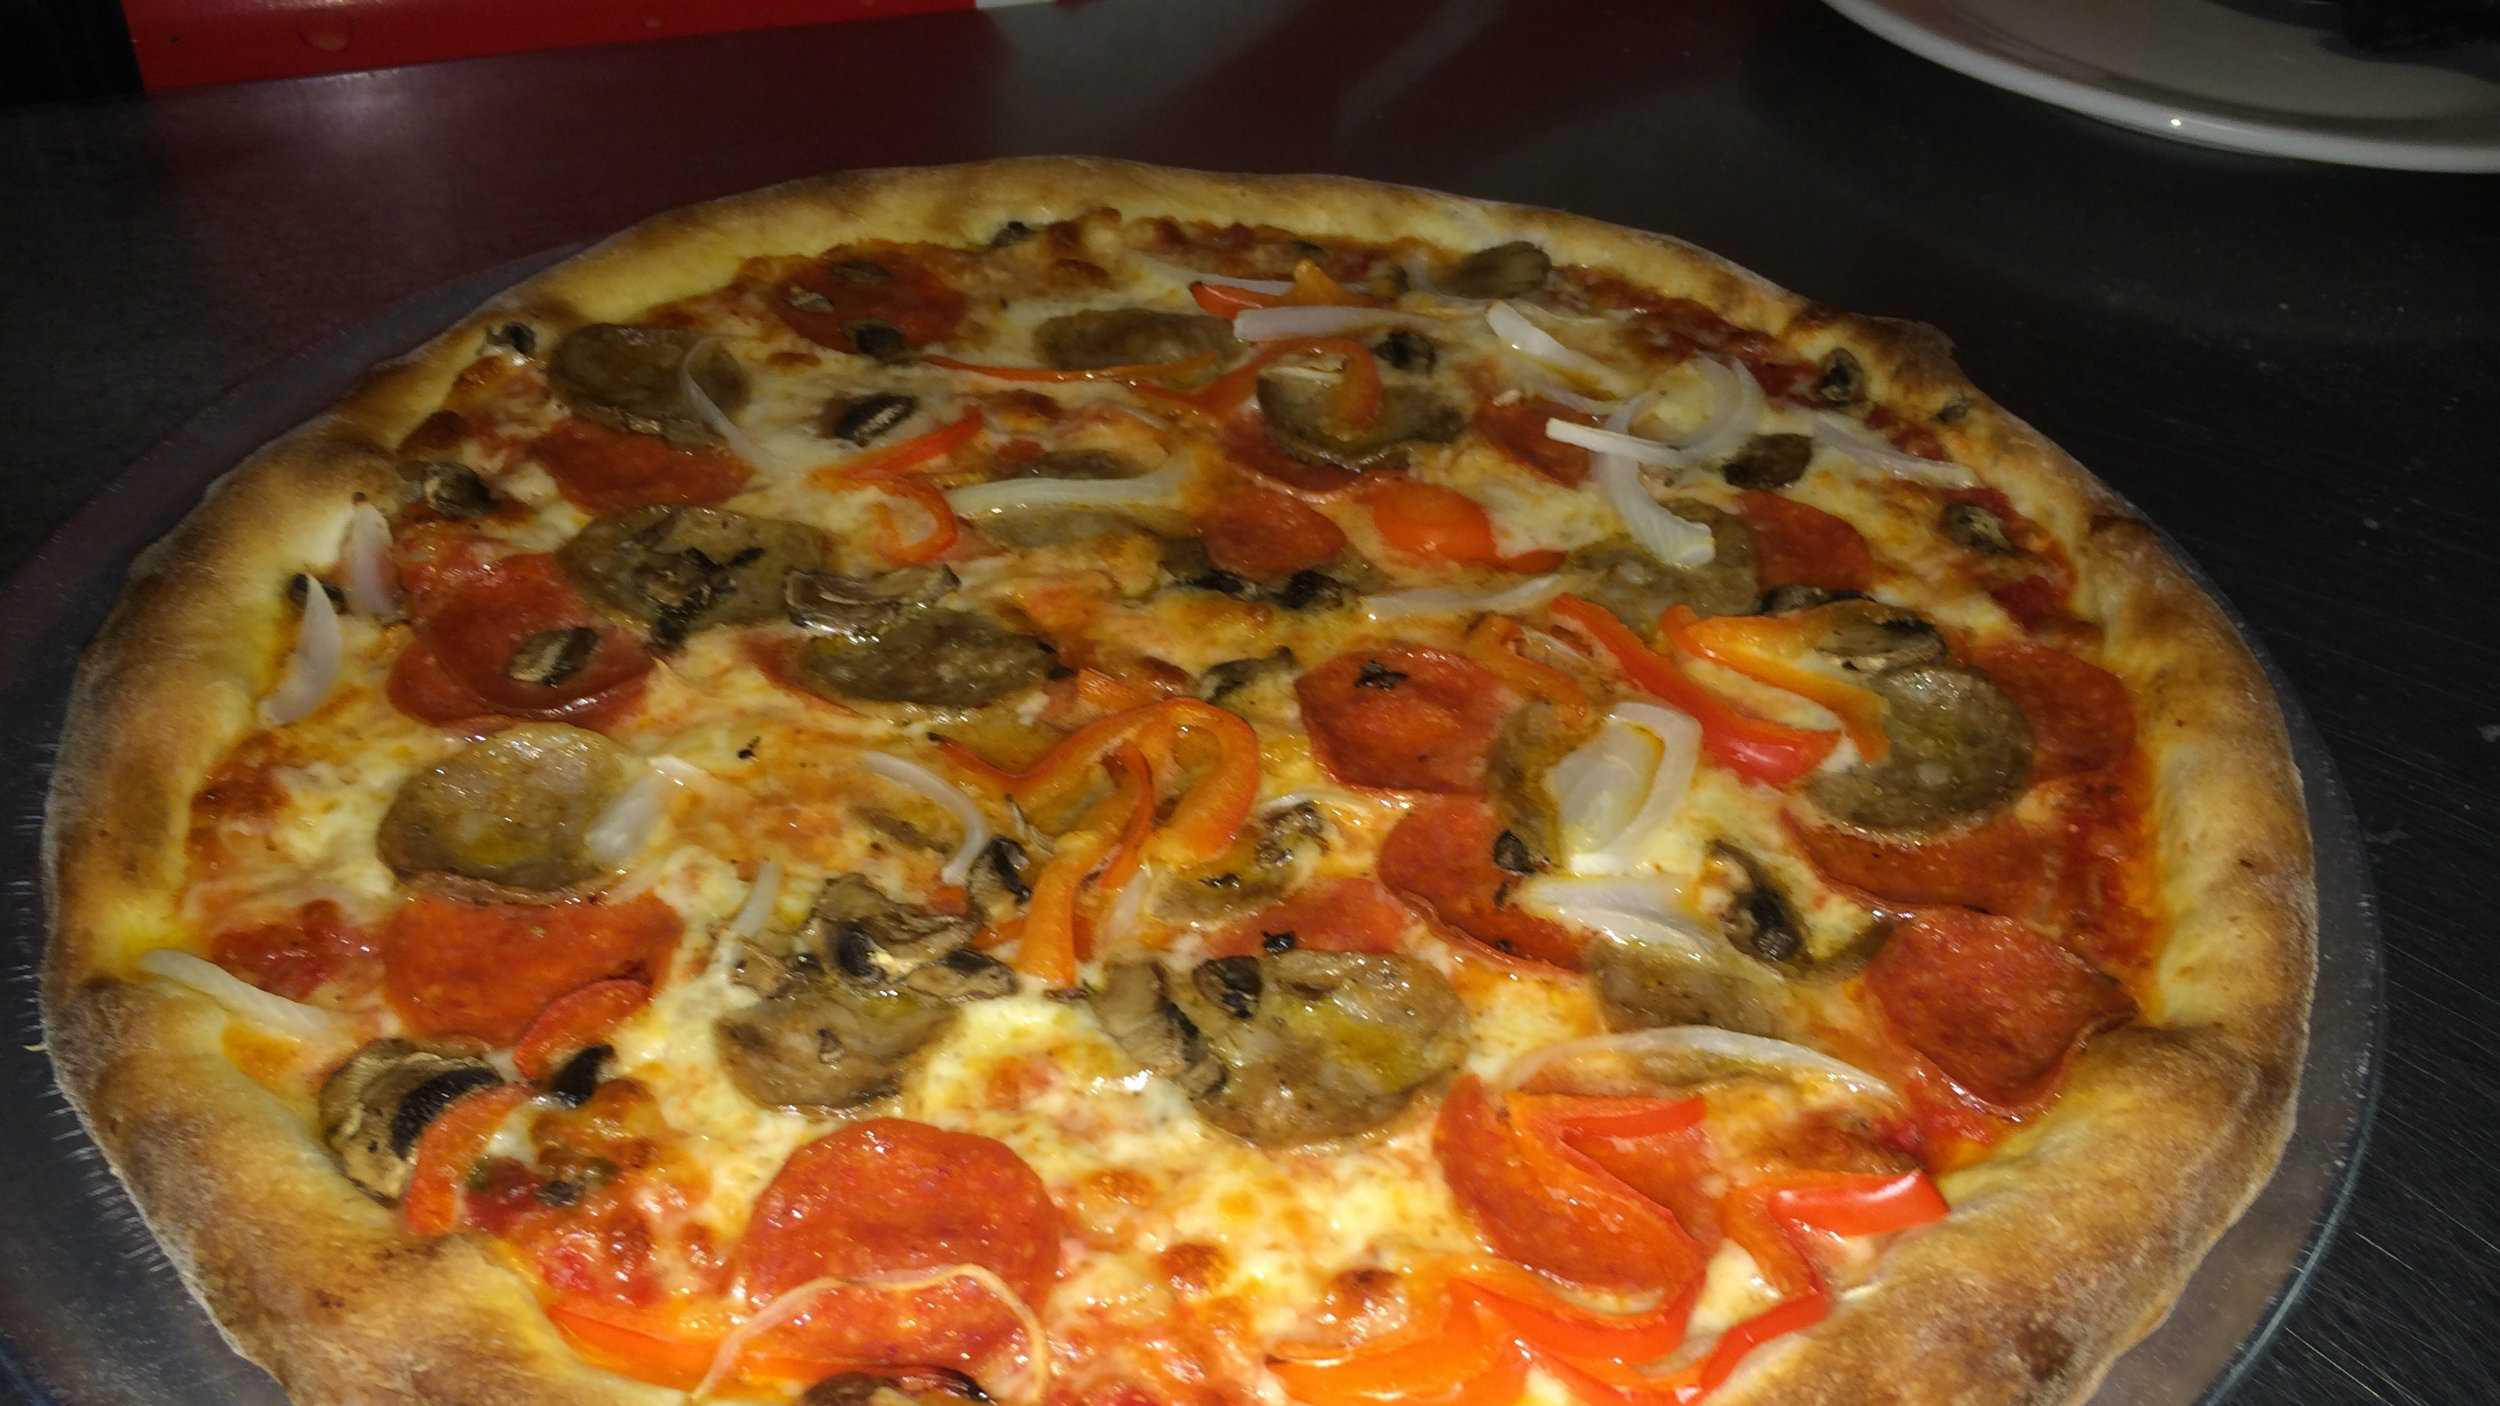 Goodfella's Special - pepperoni, sausage, mushrooms, onions and red peppers